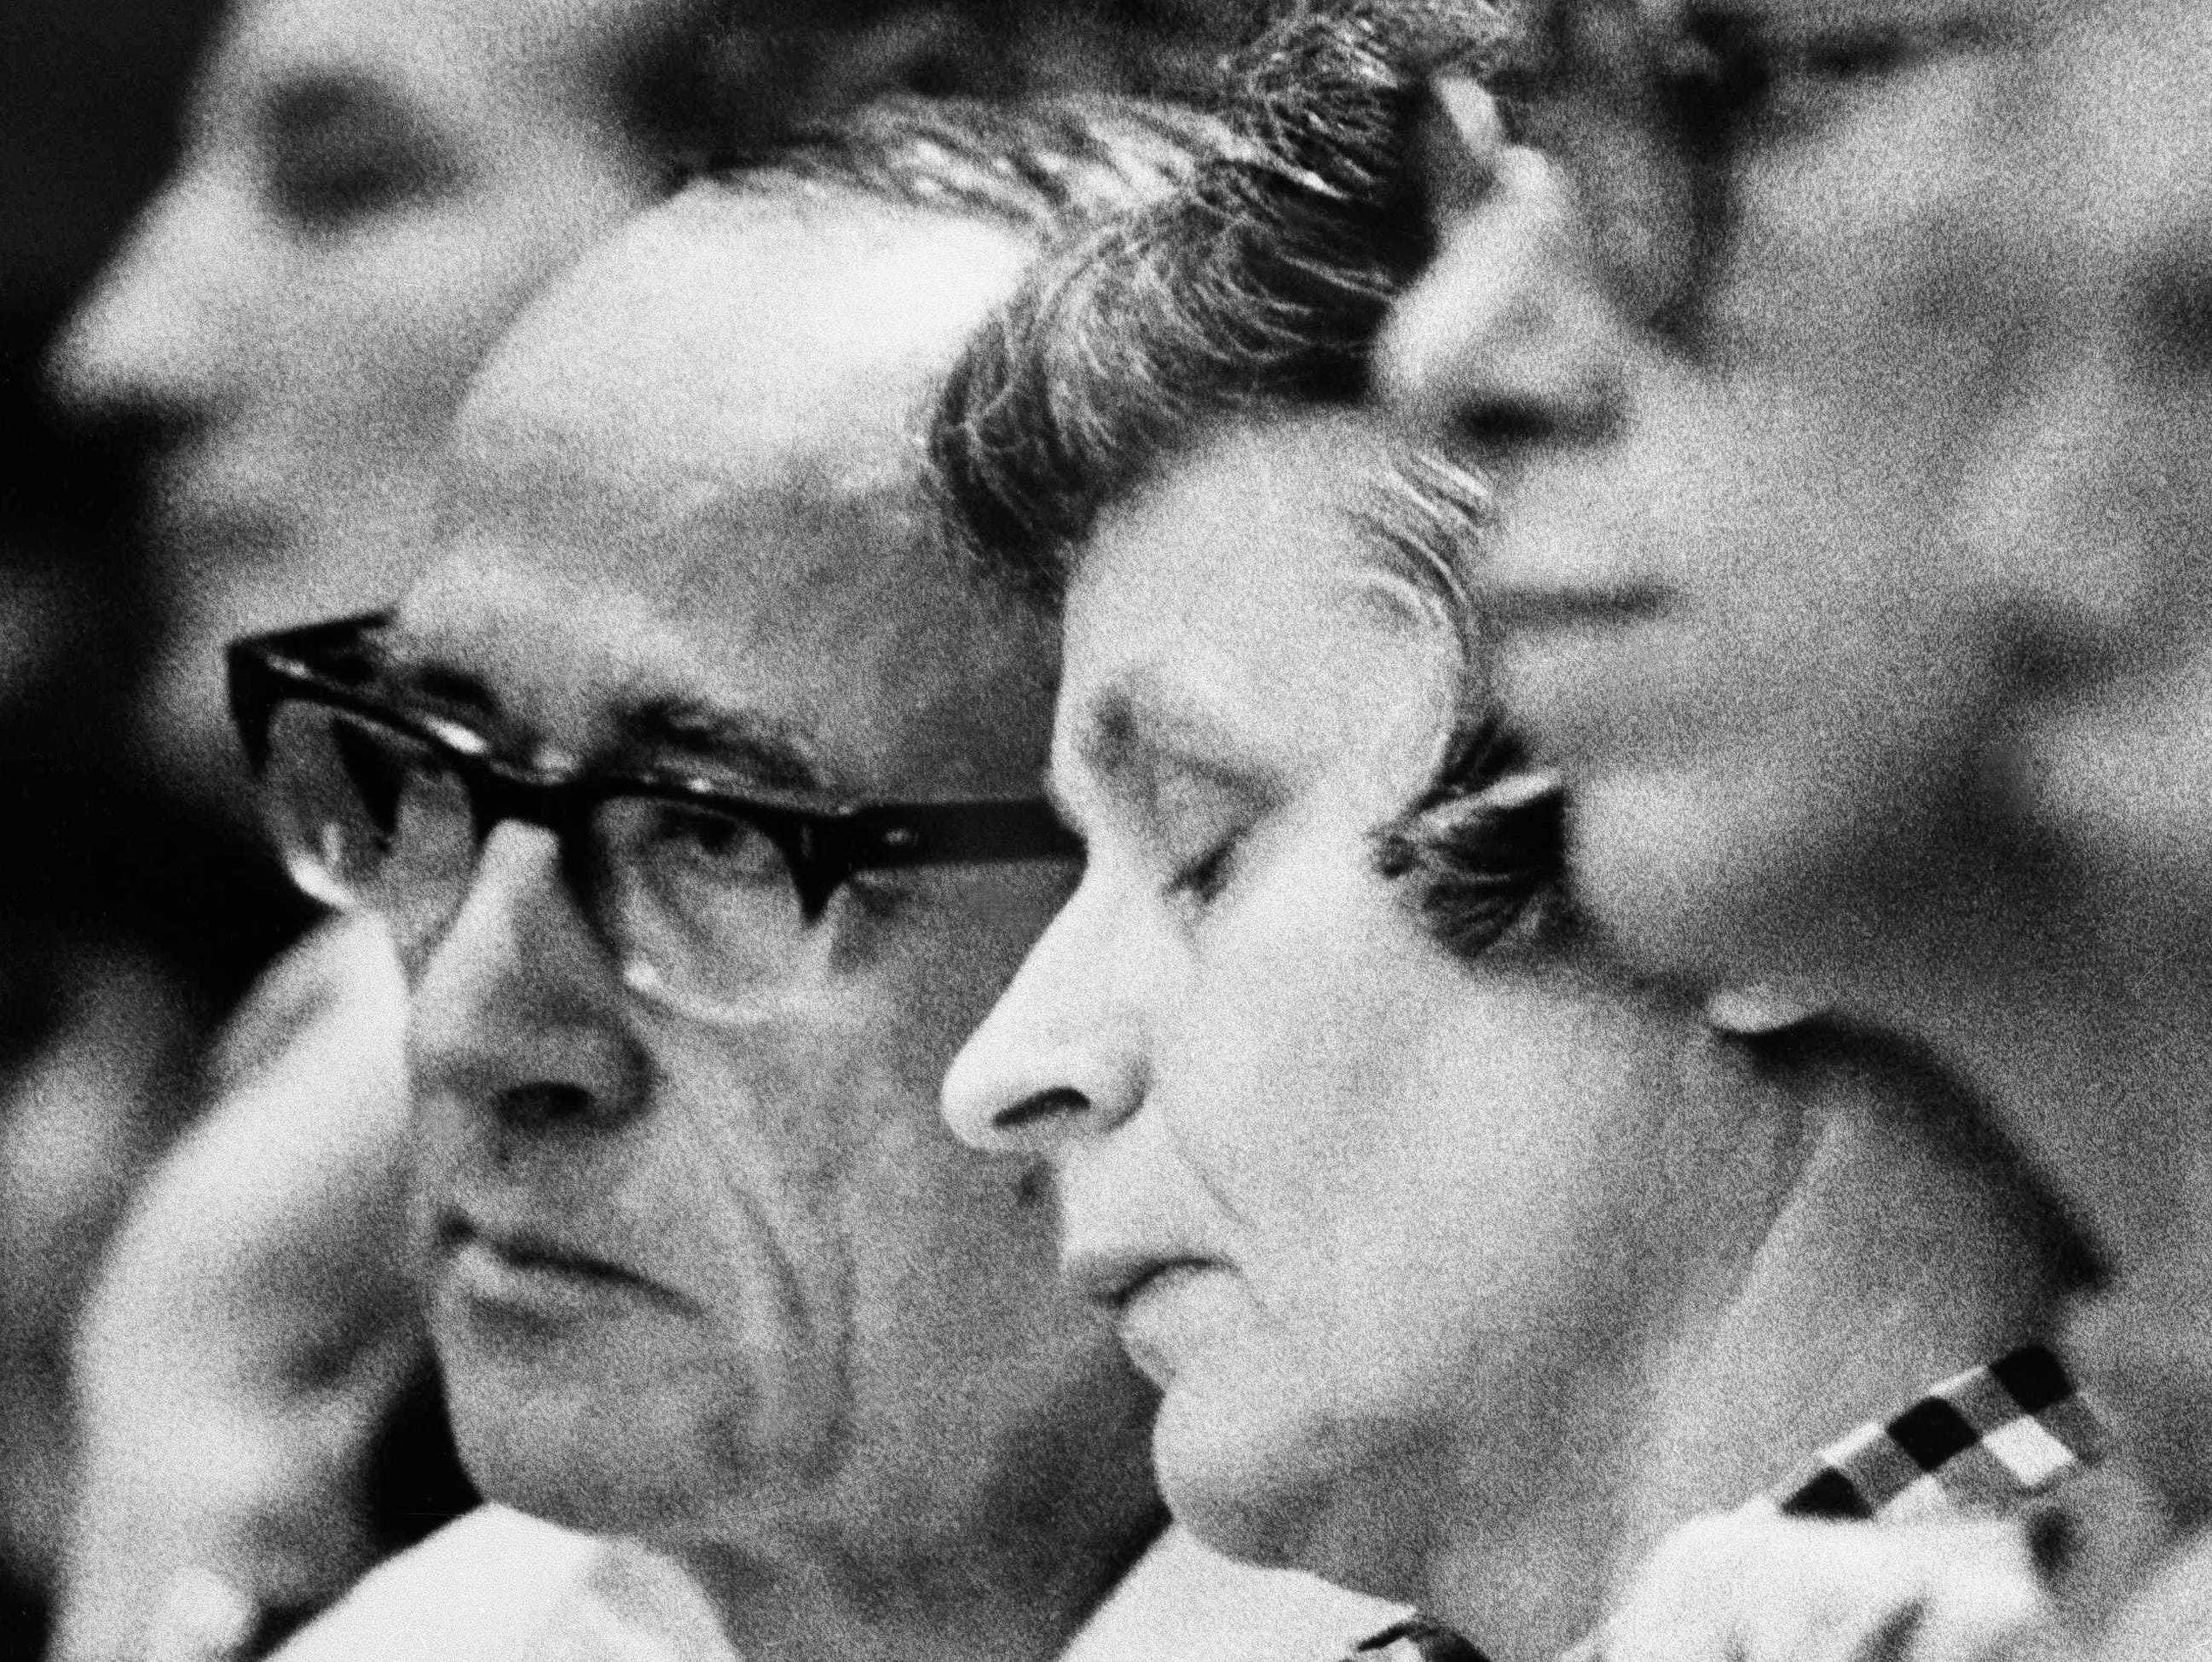 Theodore Bundy's mother Louise, right, and his stepfather John react to Judge Edward Cowart's statements, July 31, 1979, as he imposed the death sentence in Miami for their son in the murders of two Chi Omega sorority sisters in 1978.